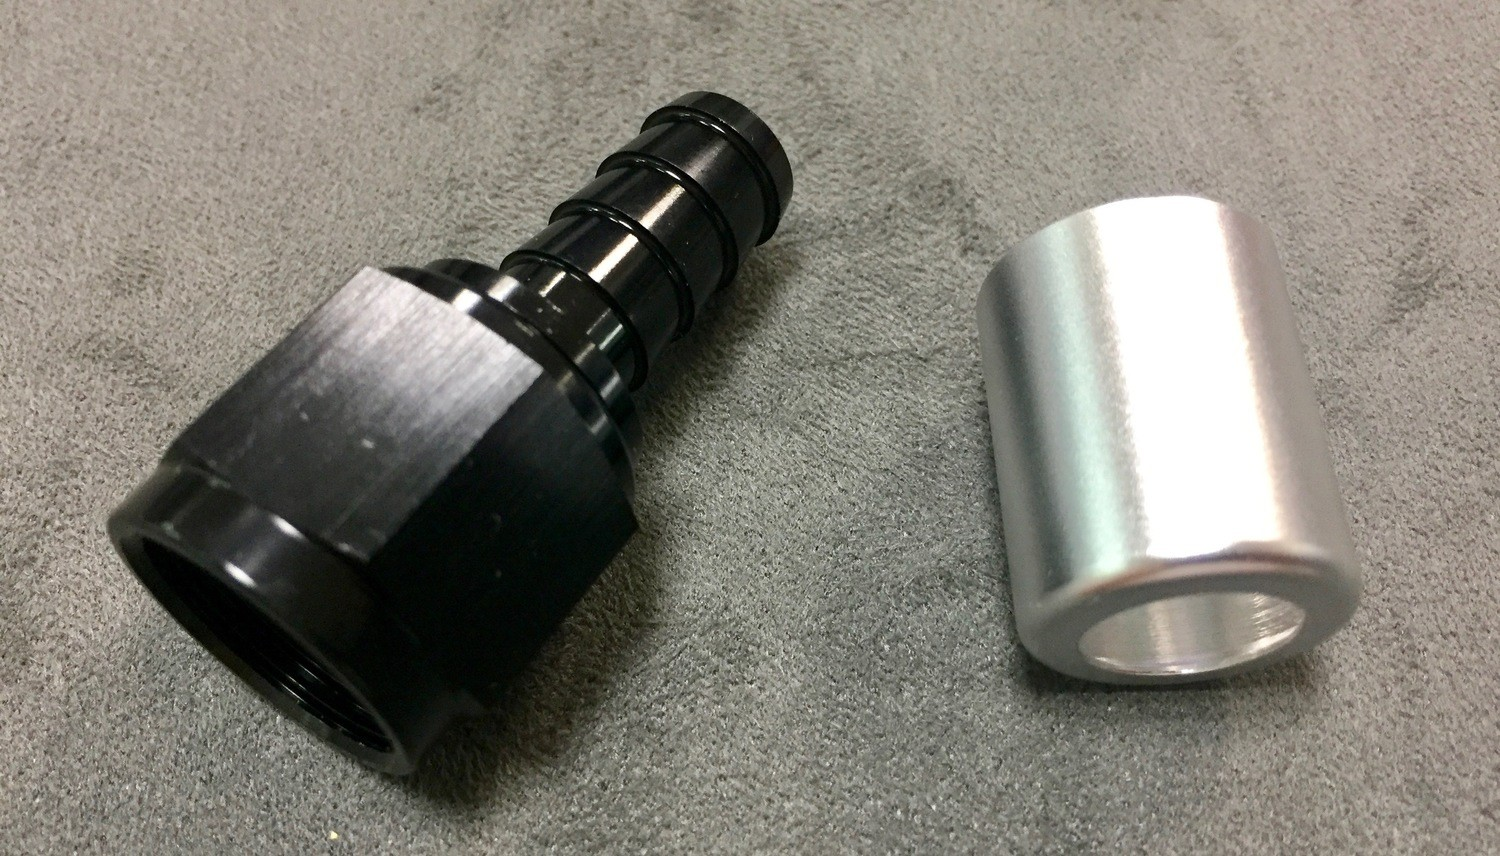 AN8 FITTING 0 DEGREE FOR VW BREATHER TUBE AND OIL FILLER